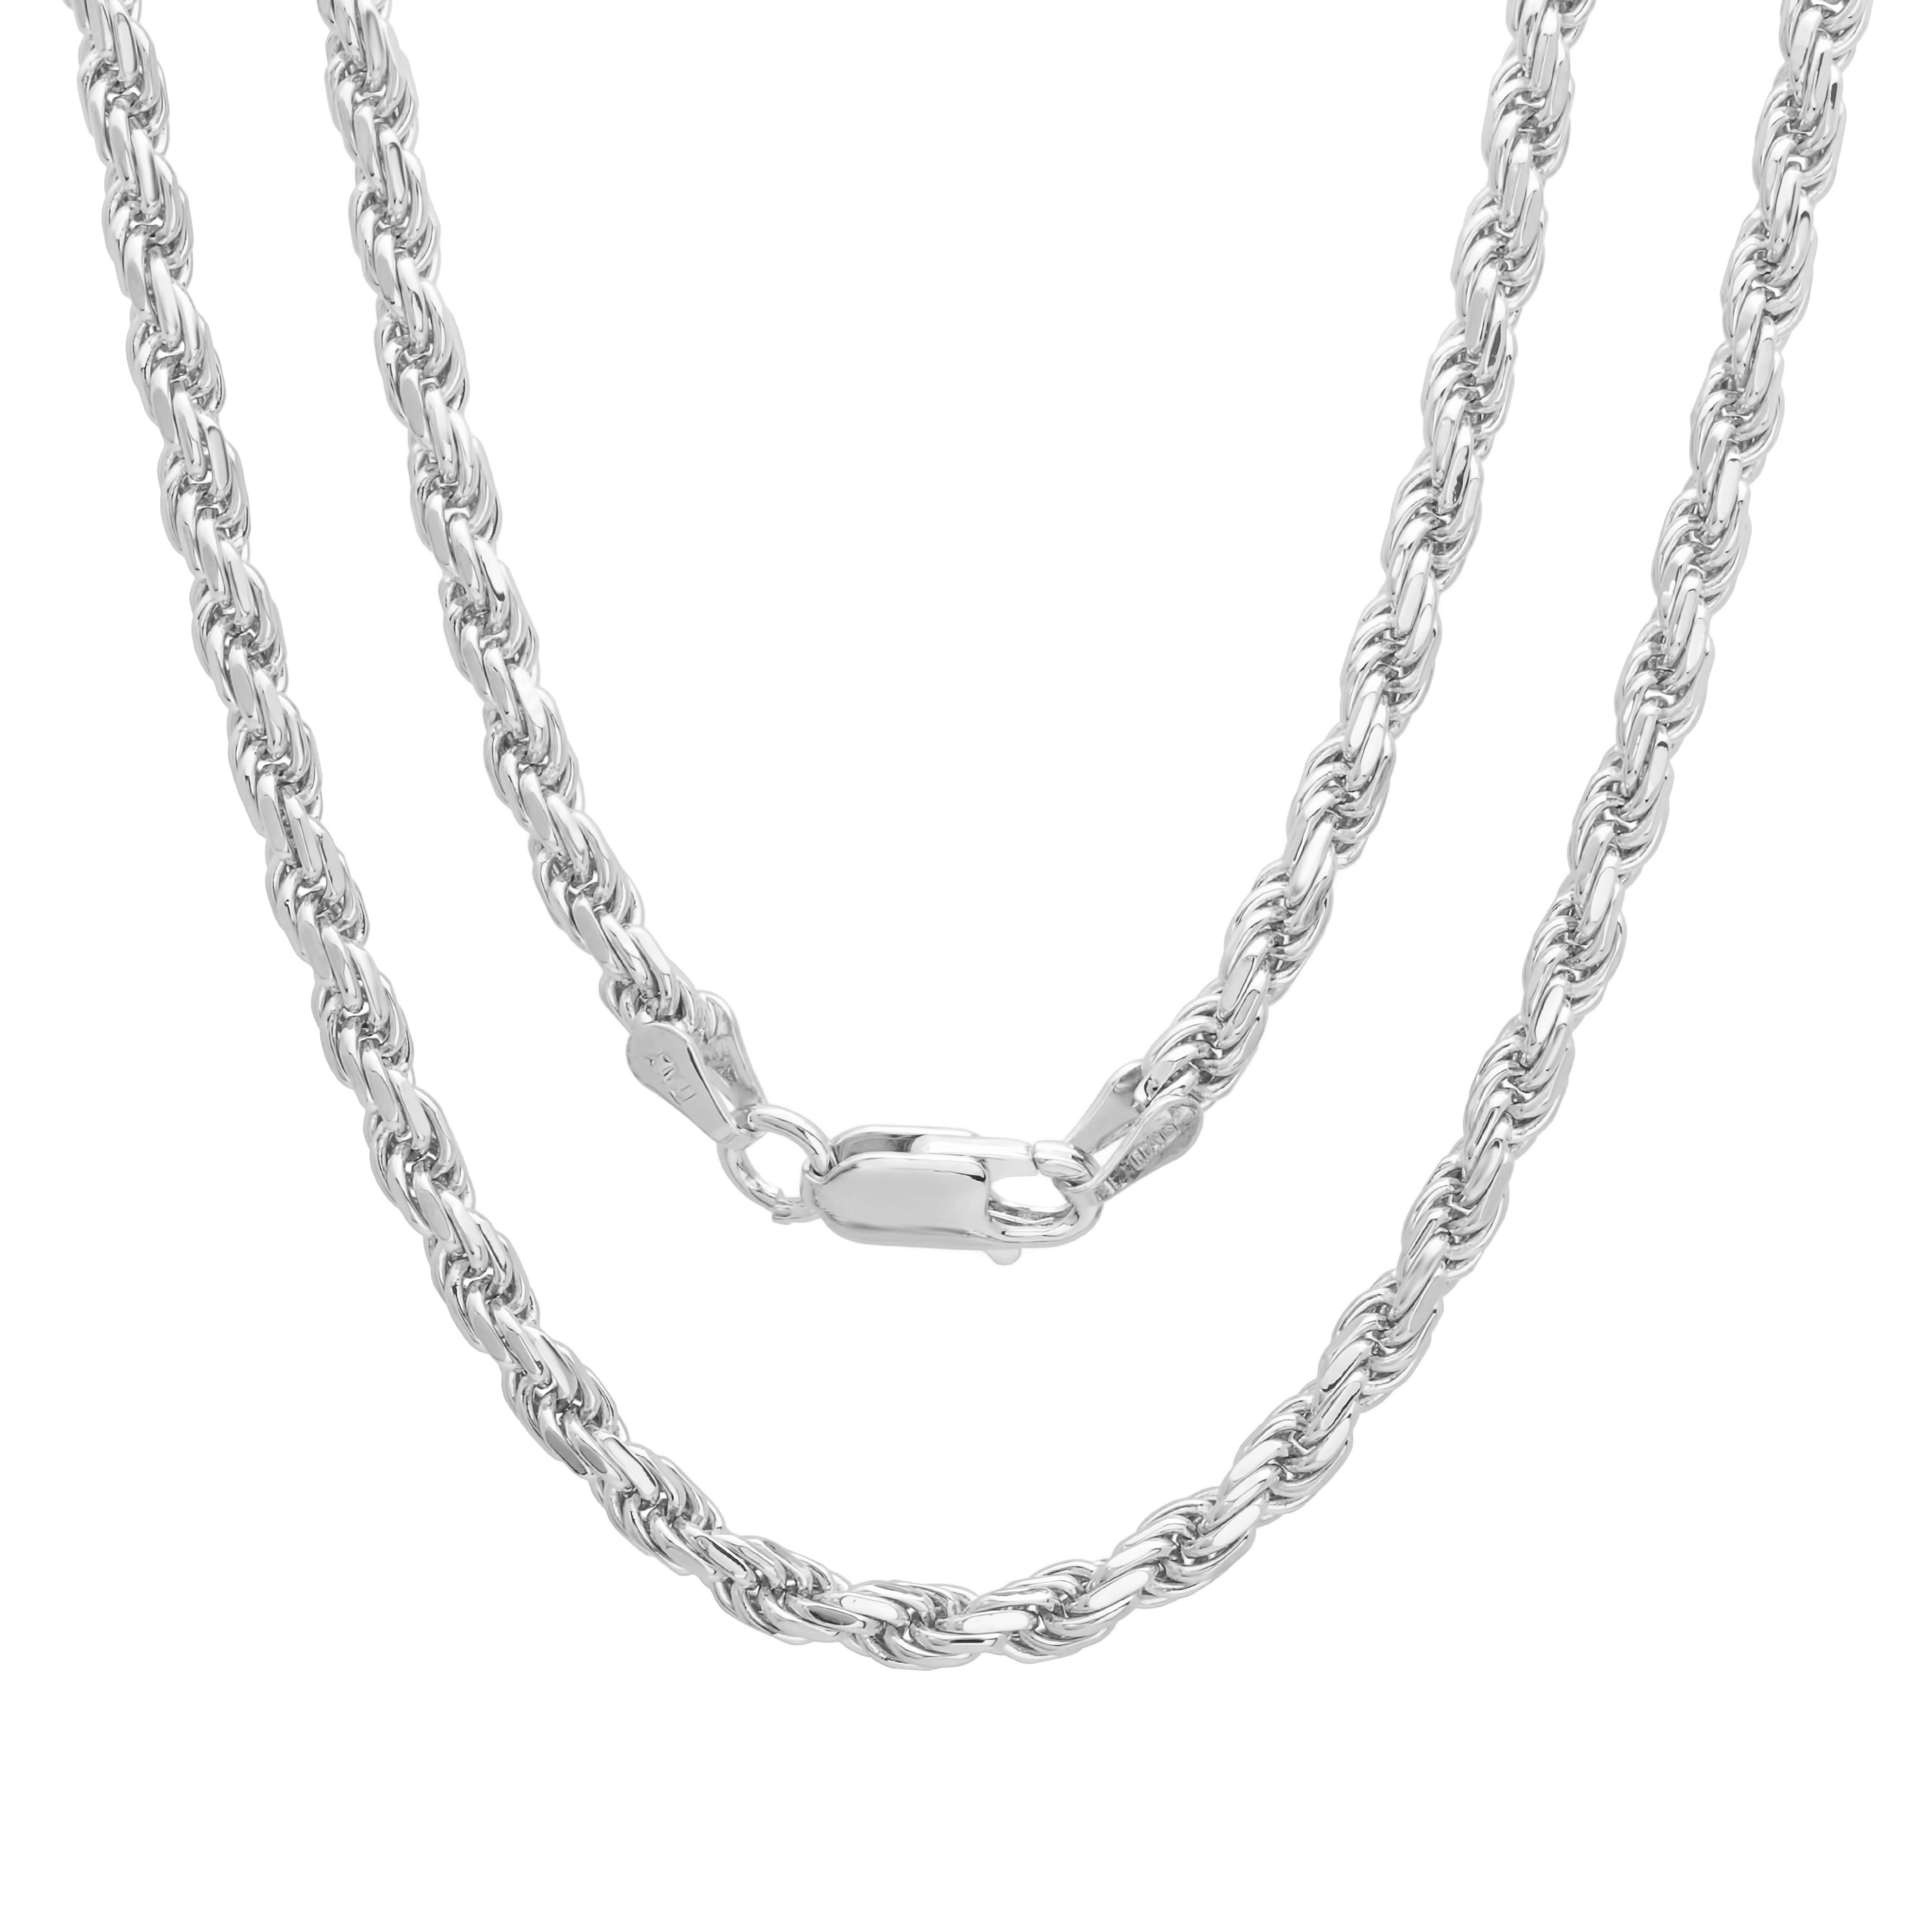 3mm Sterling Silver Box Chain 20 Inches